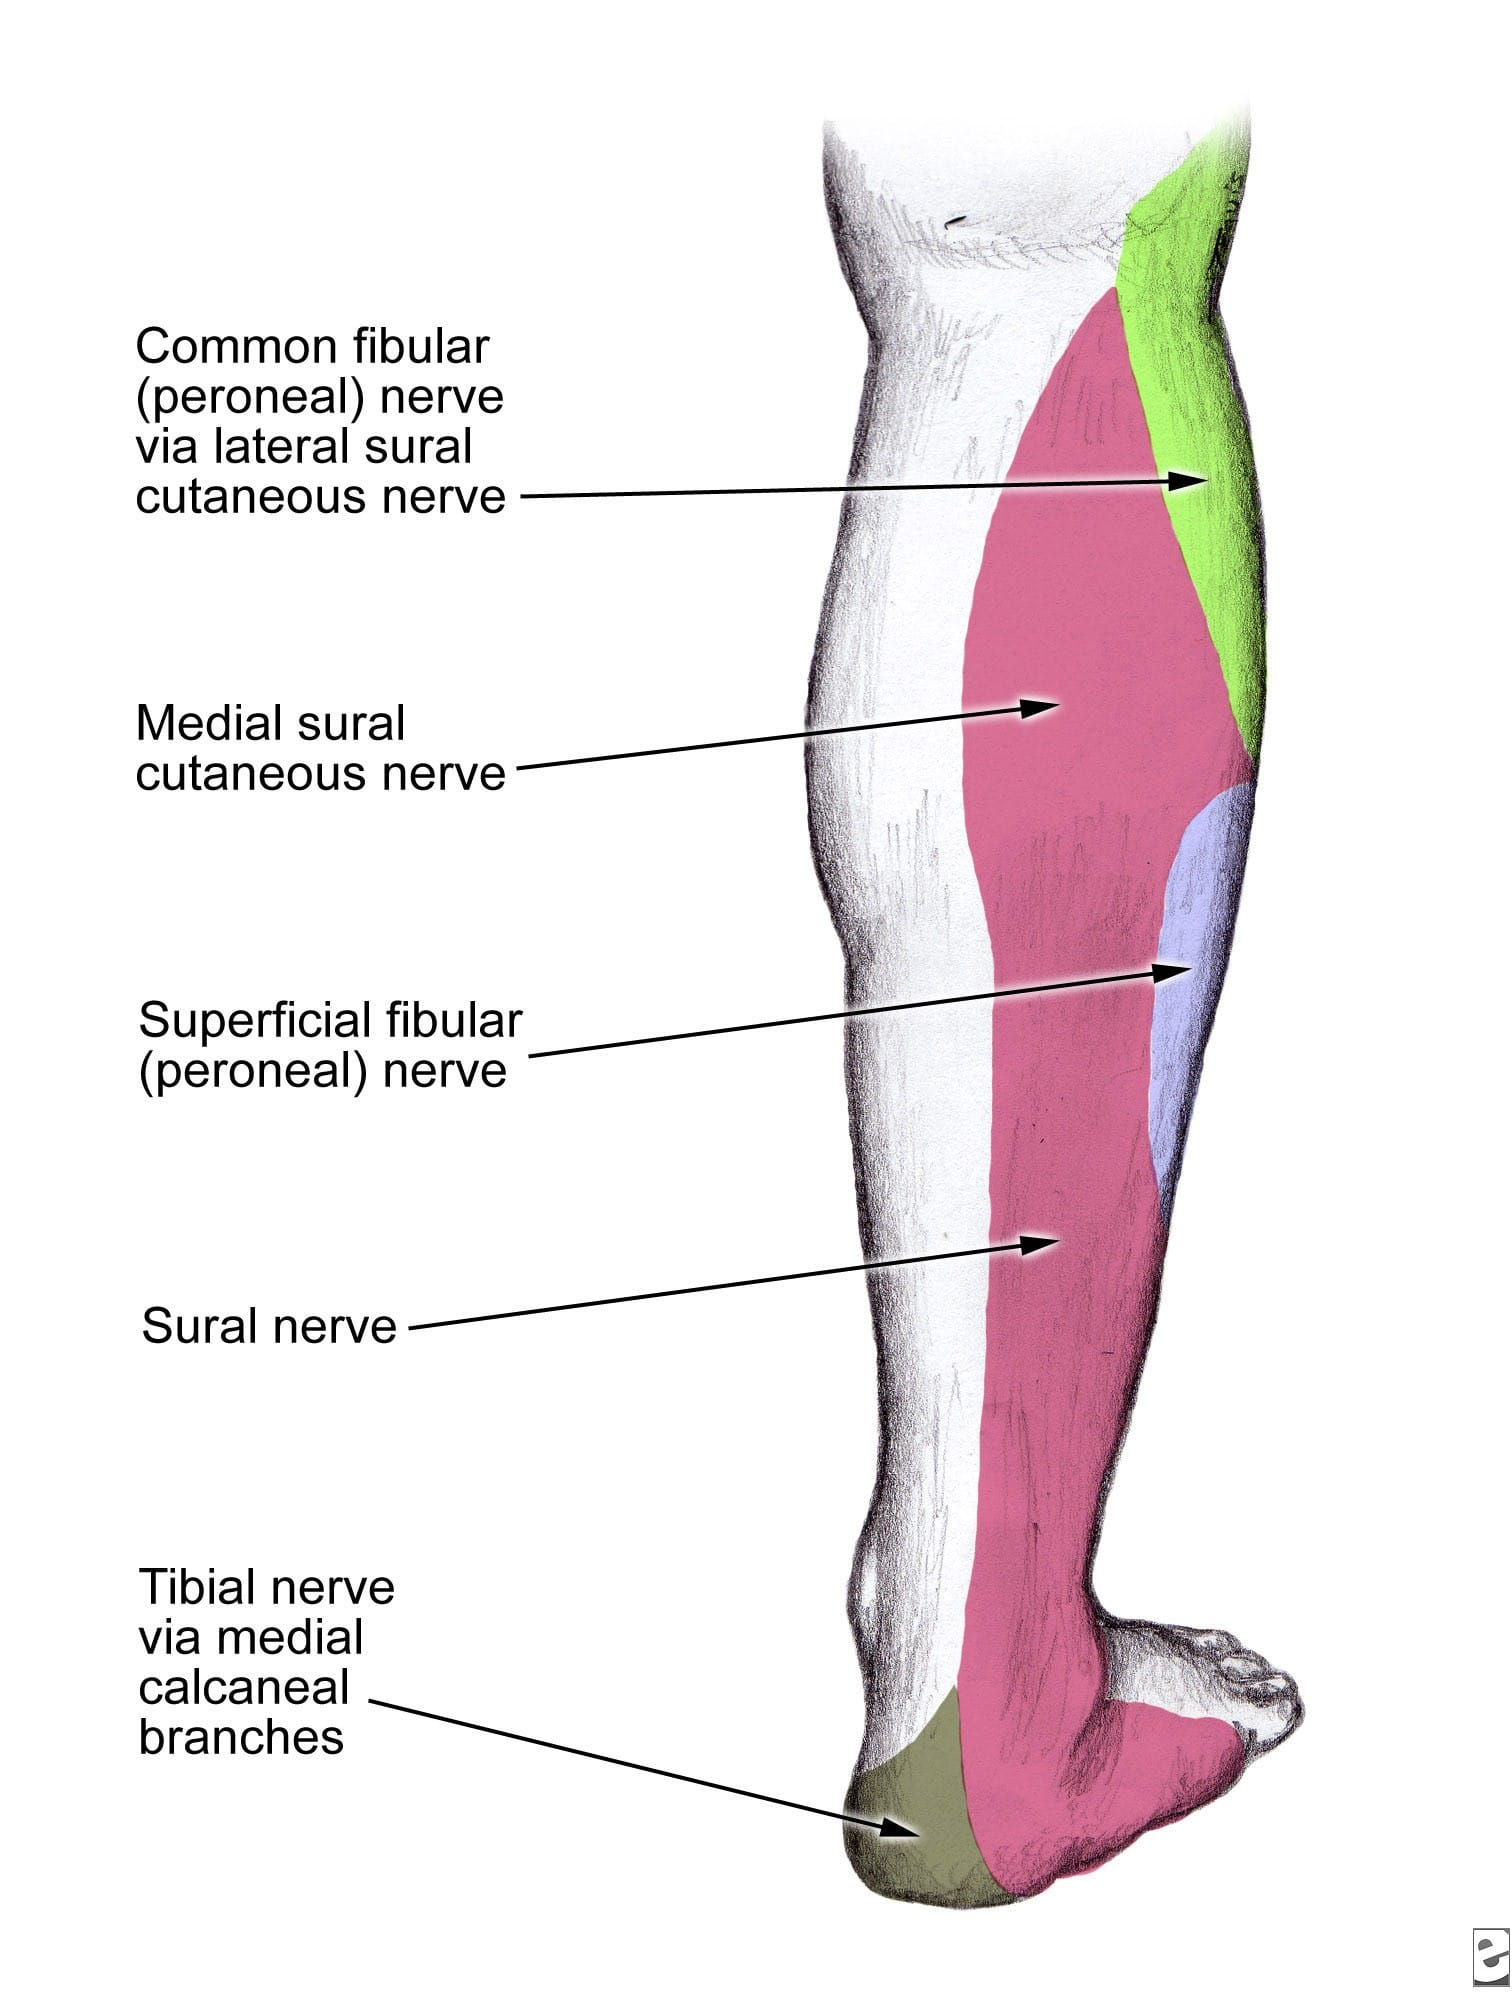 Sural nerve location diagram